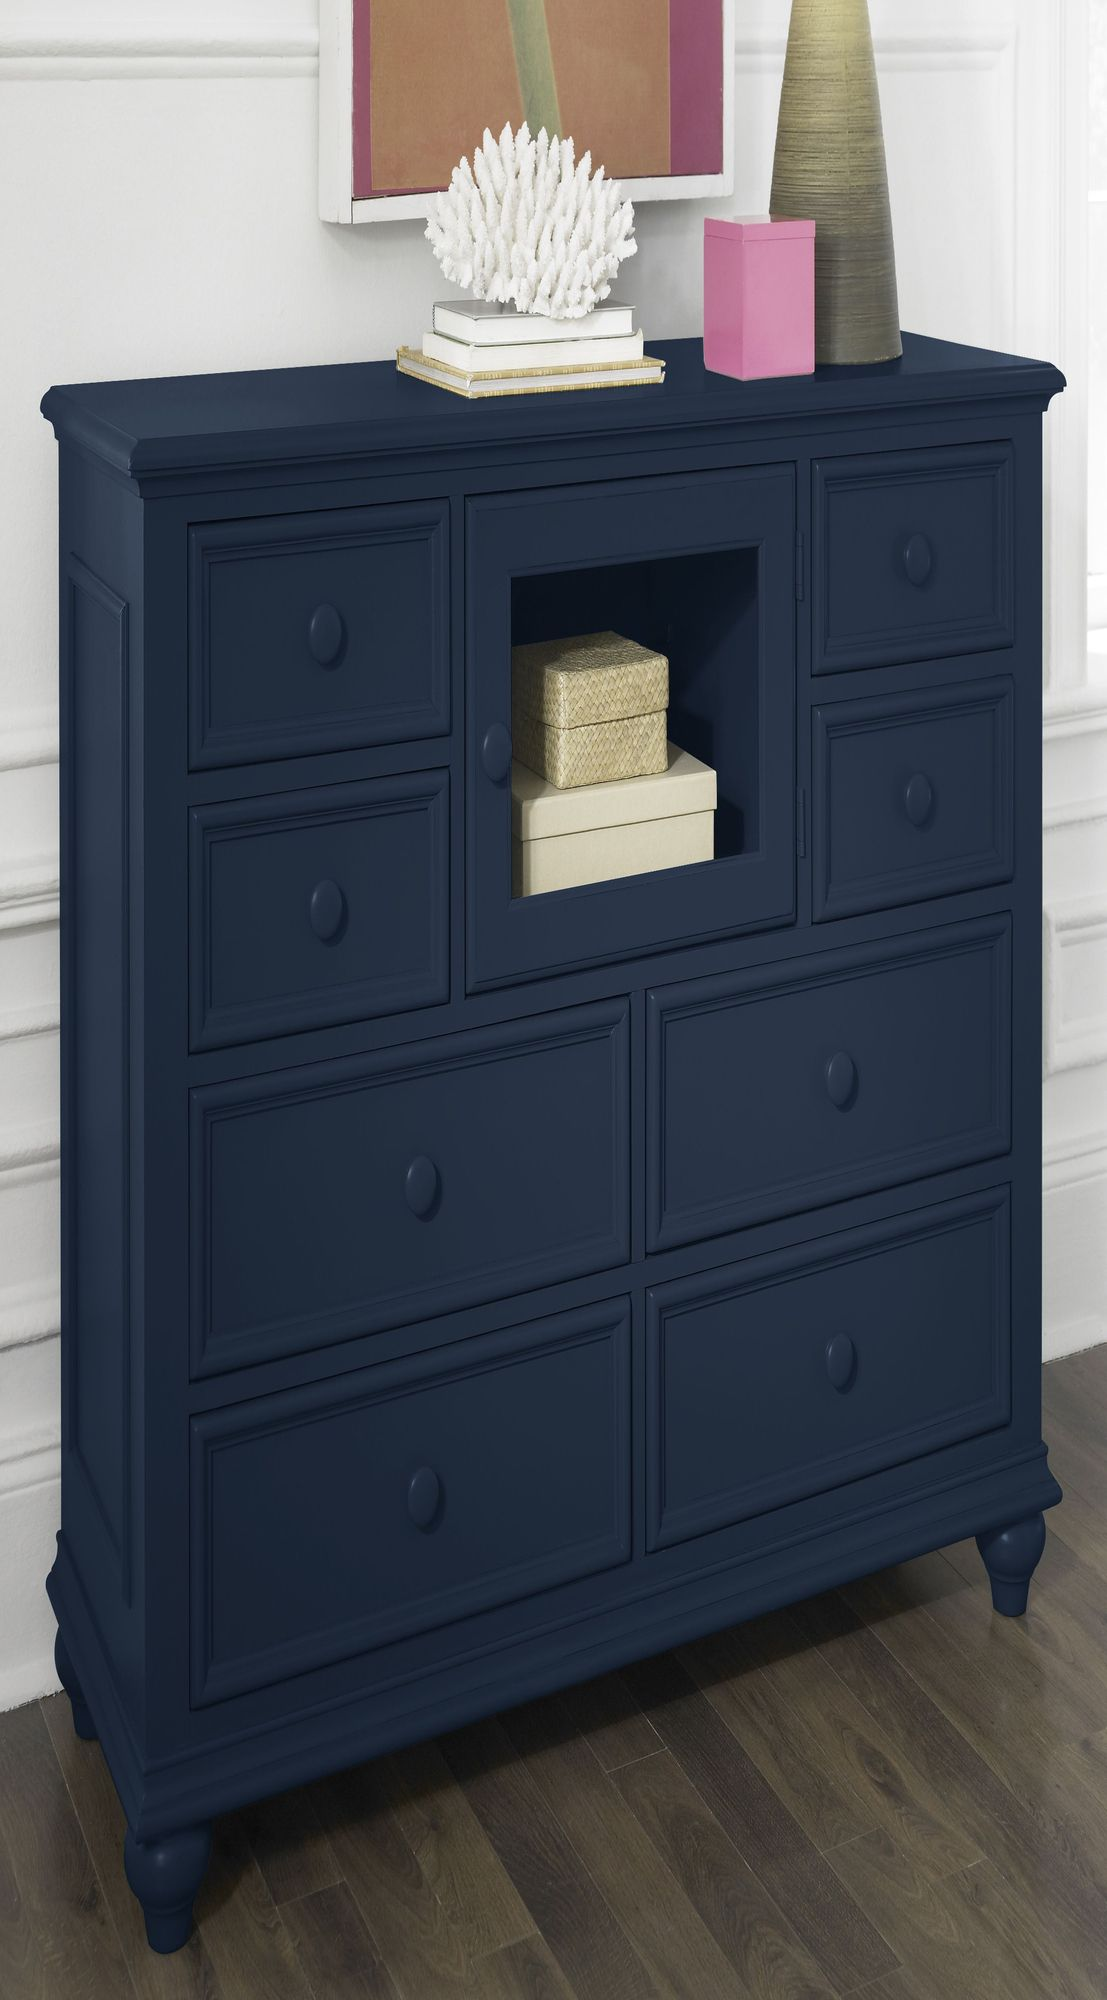 Riverside Furniture Splash Of Color Entertainment Dresser In Navy Blue.  This Is What Iu0027ve Been Wanting To Do With Our Bedroom Furniture!